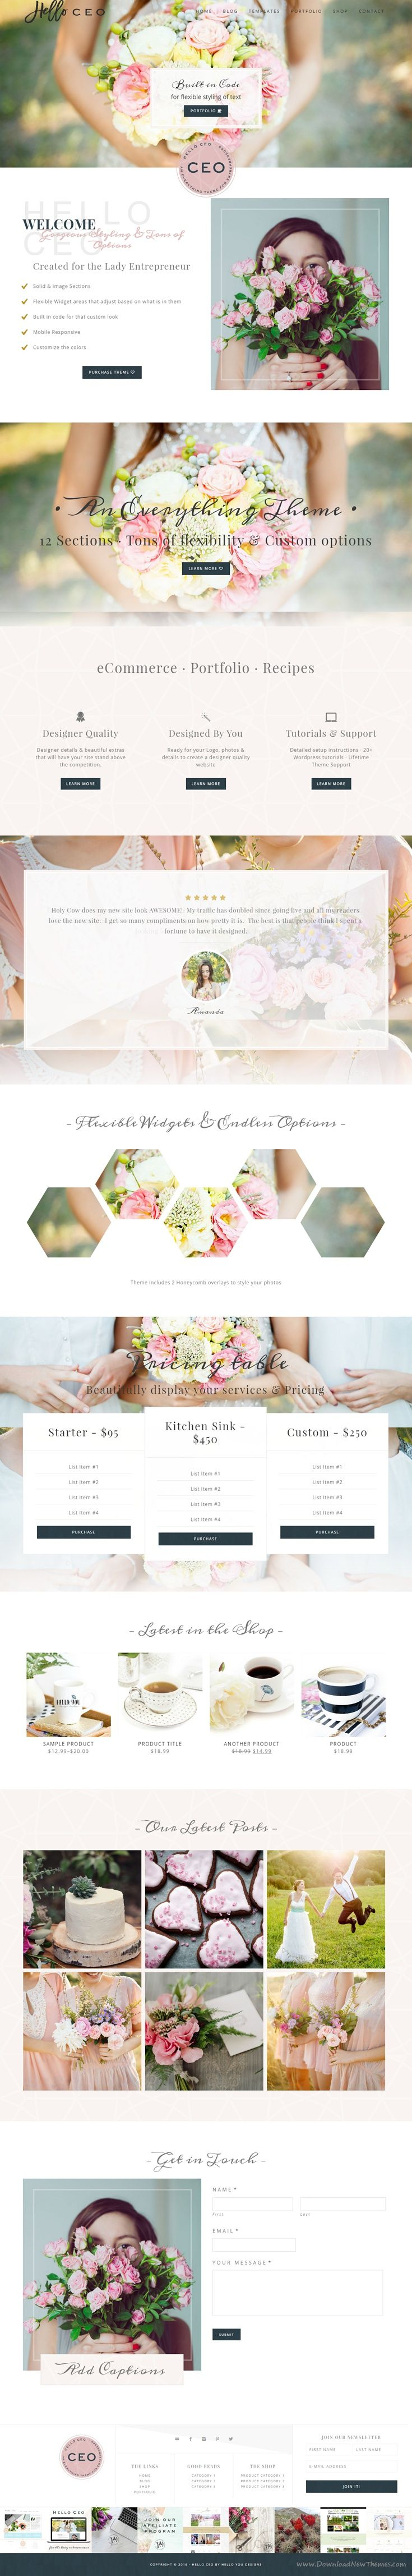 Hello CEO - Genesis WordPress Theme  Hello CEO is a modern & elegant onepage style site. The gorgeous sections on the homepage are versatile and completely customizable. #WordPress #blog #feminine